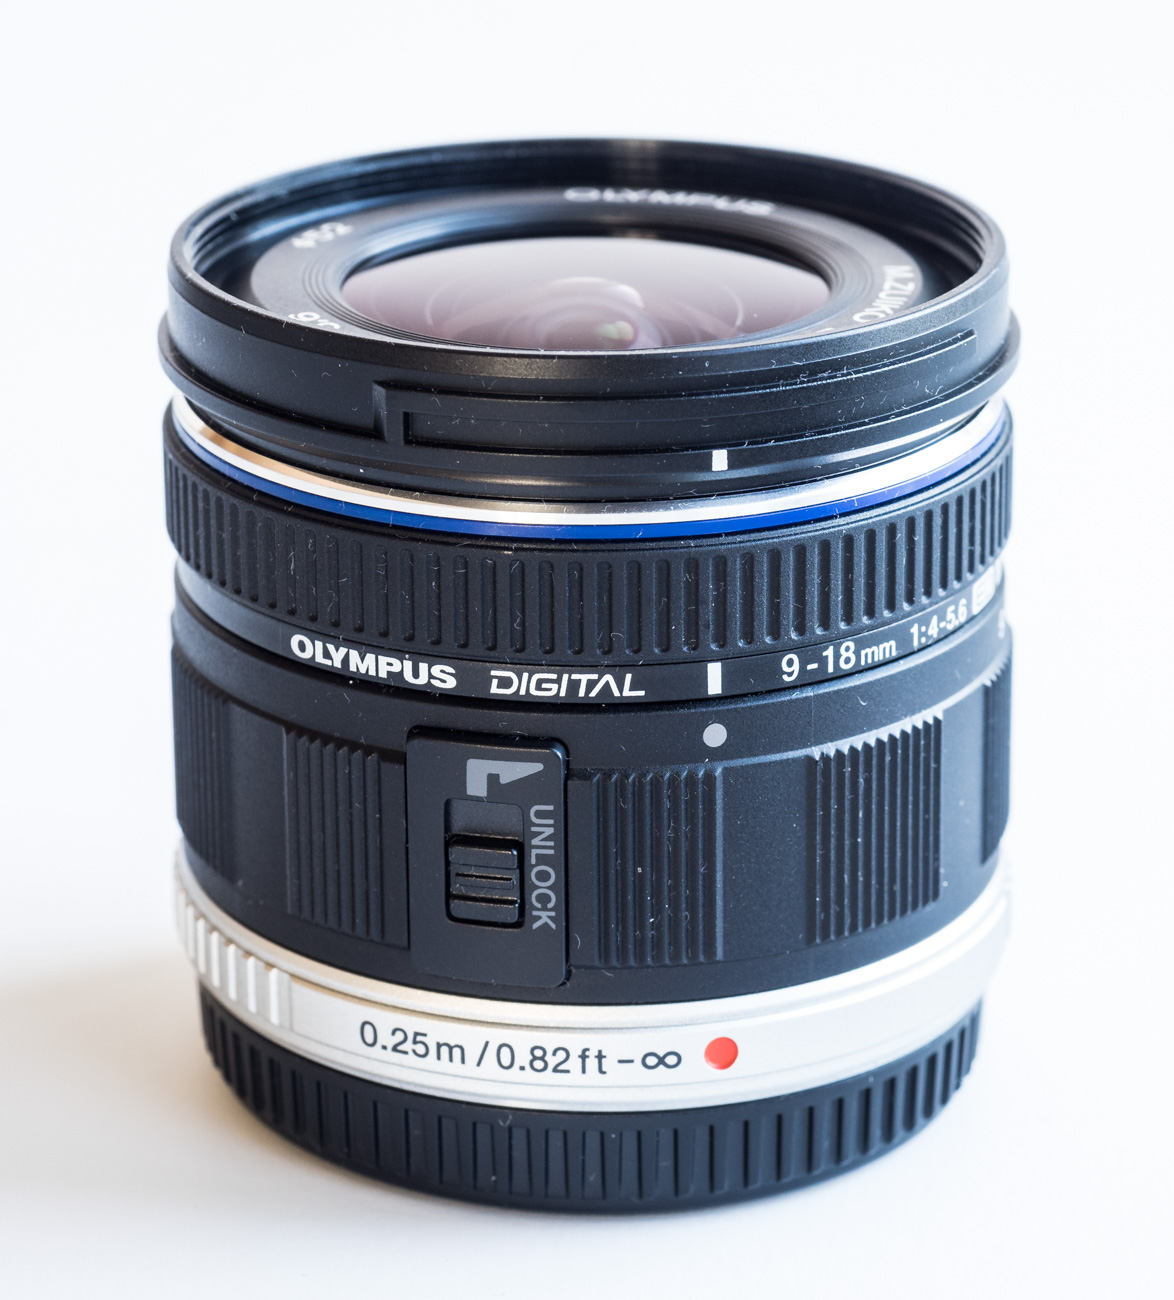 Olympus Wide Angle Zooms 9 18 Vs 7 14 Review Part 1